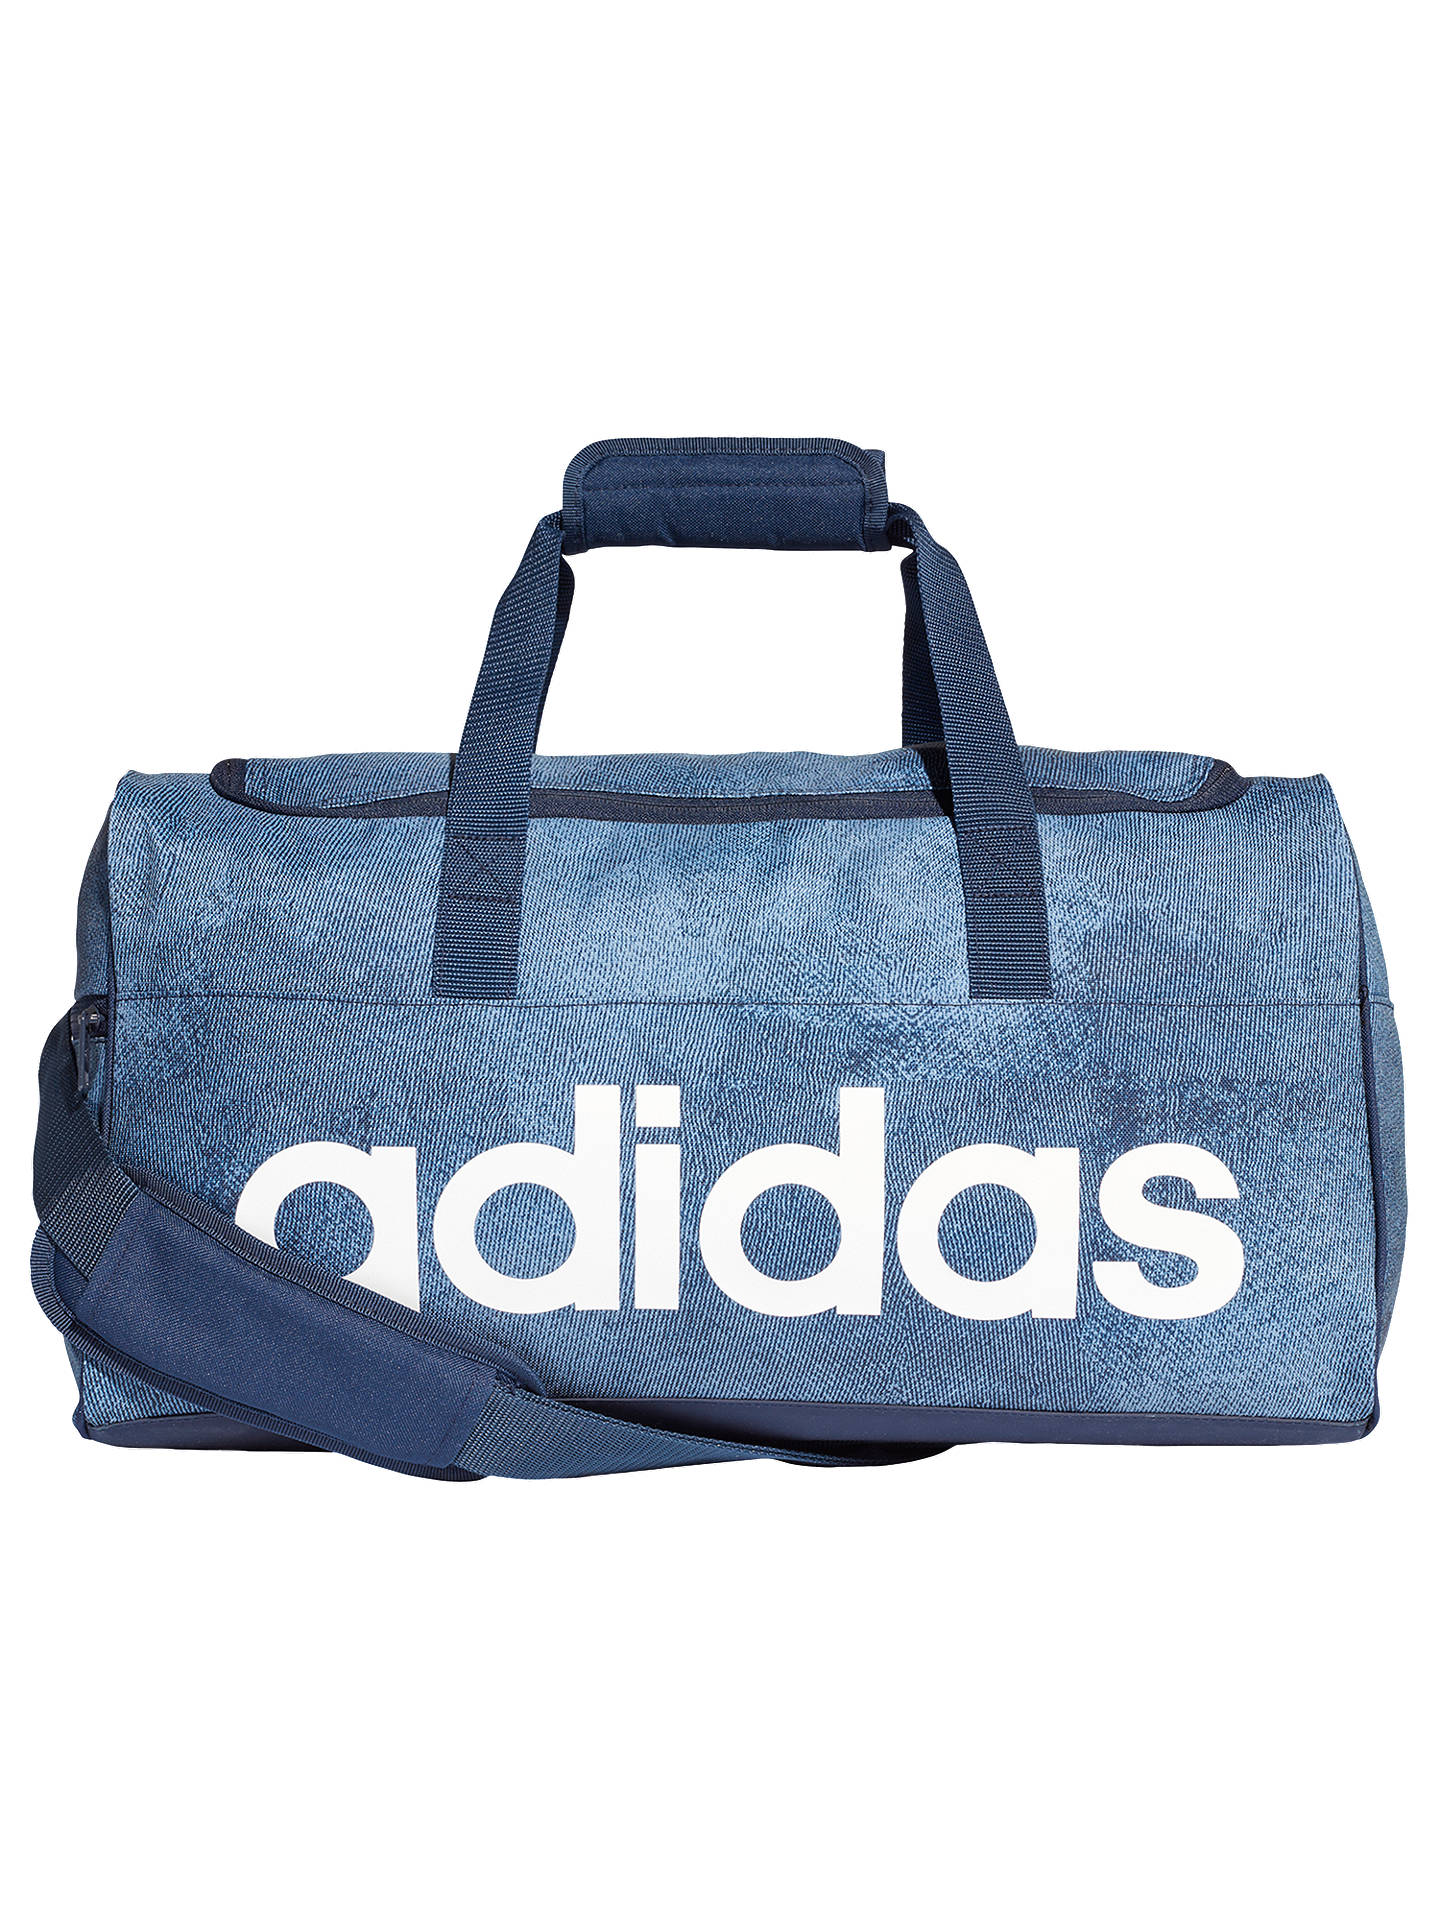 31b1a3ca3f48 Buyadidas Linear Performance Duffel Bag